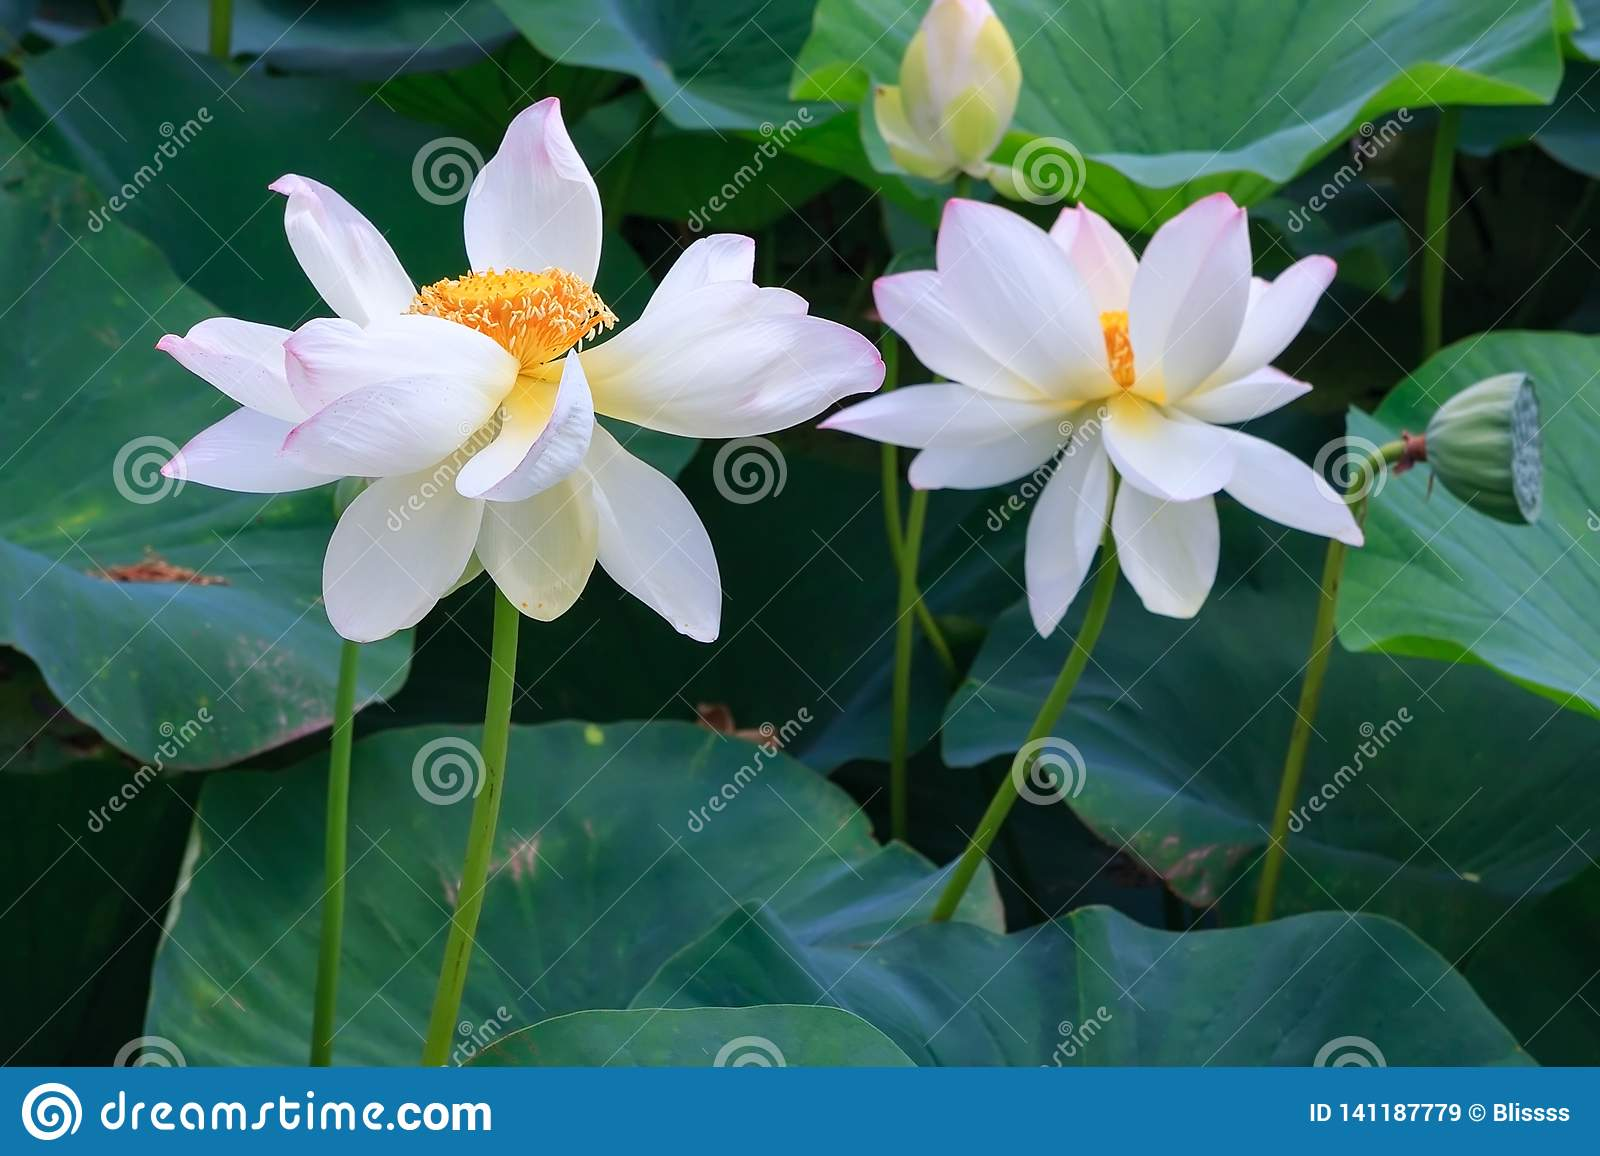 Couple of white blossoming lotus flowers on green leaves background close up view